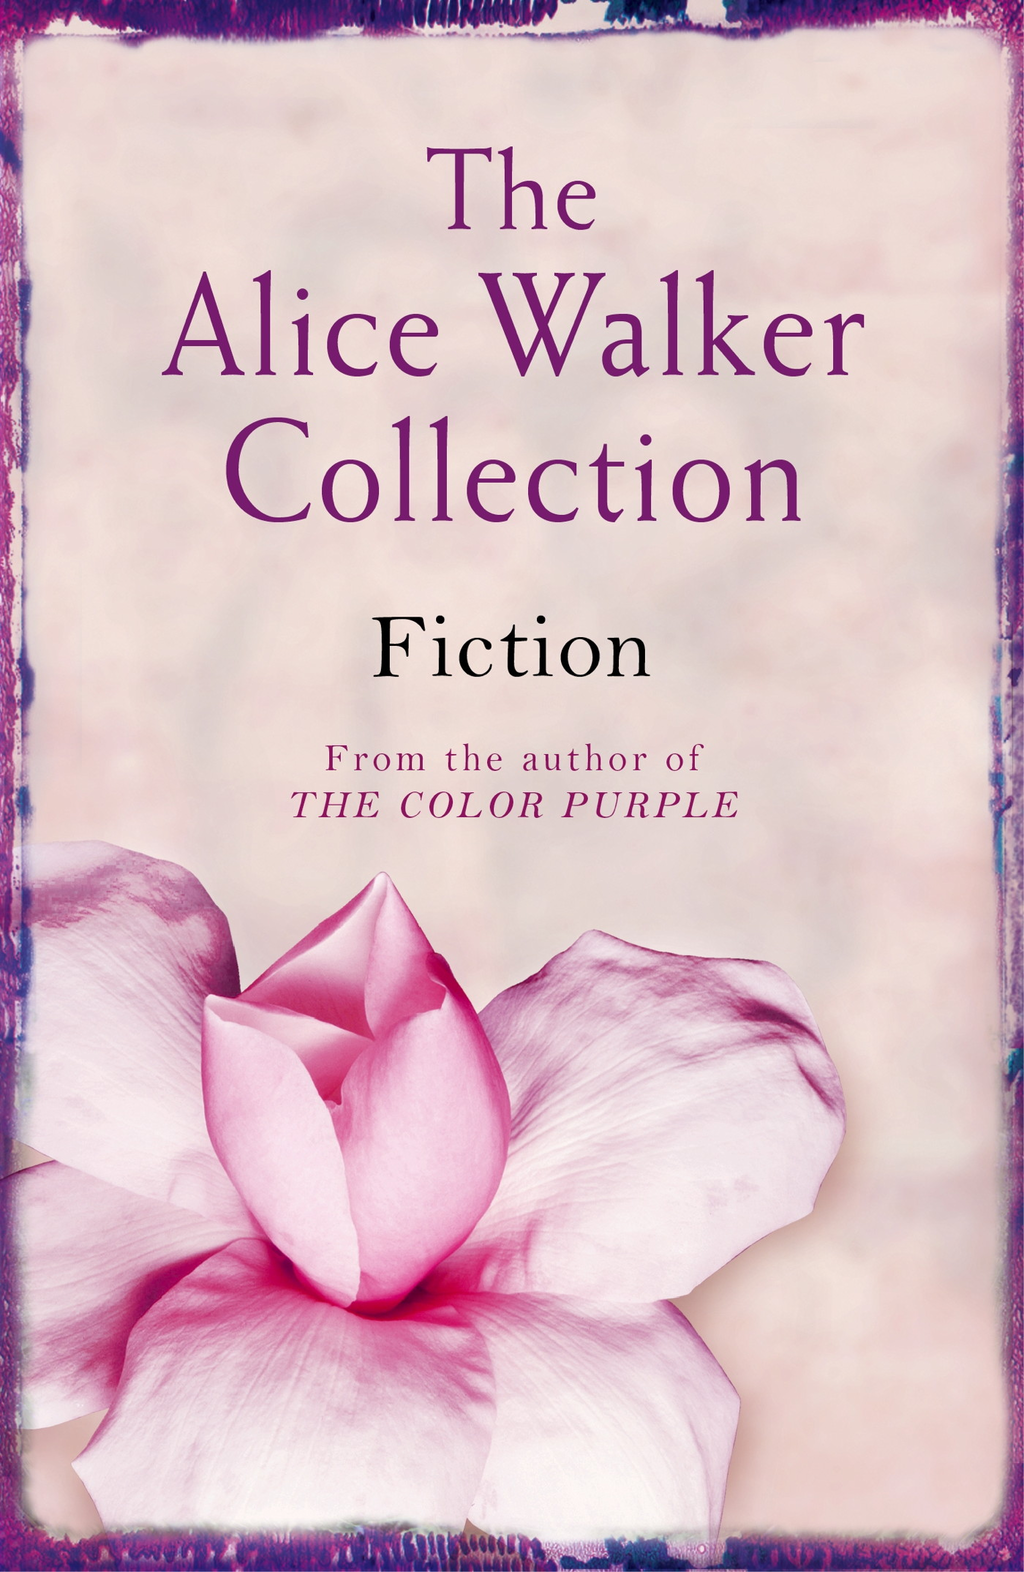 The Alice Walker Collection Fiction